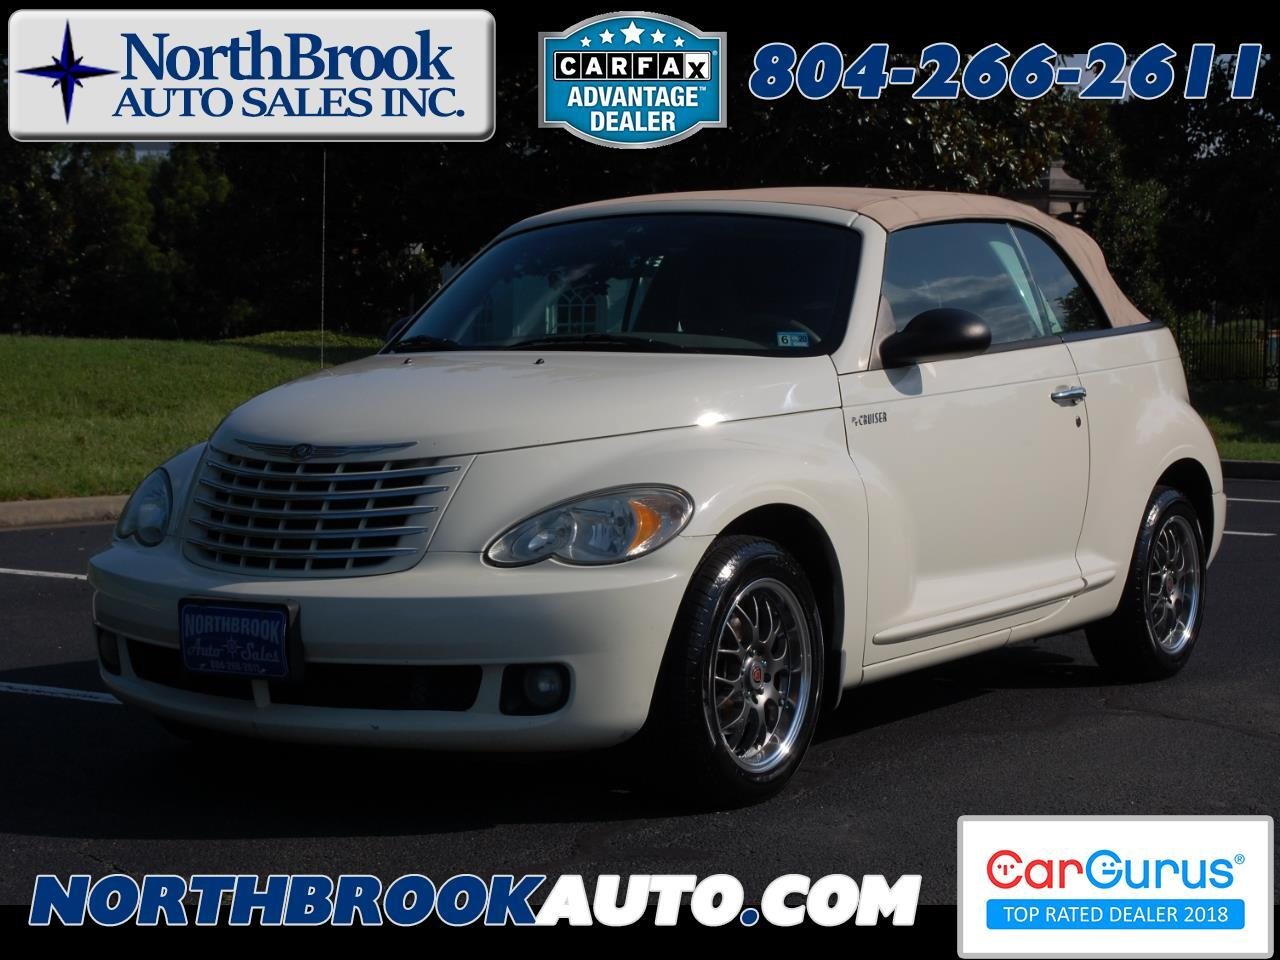 2006 Chrysler PT Cruiser 2dr Convertible Touring